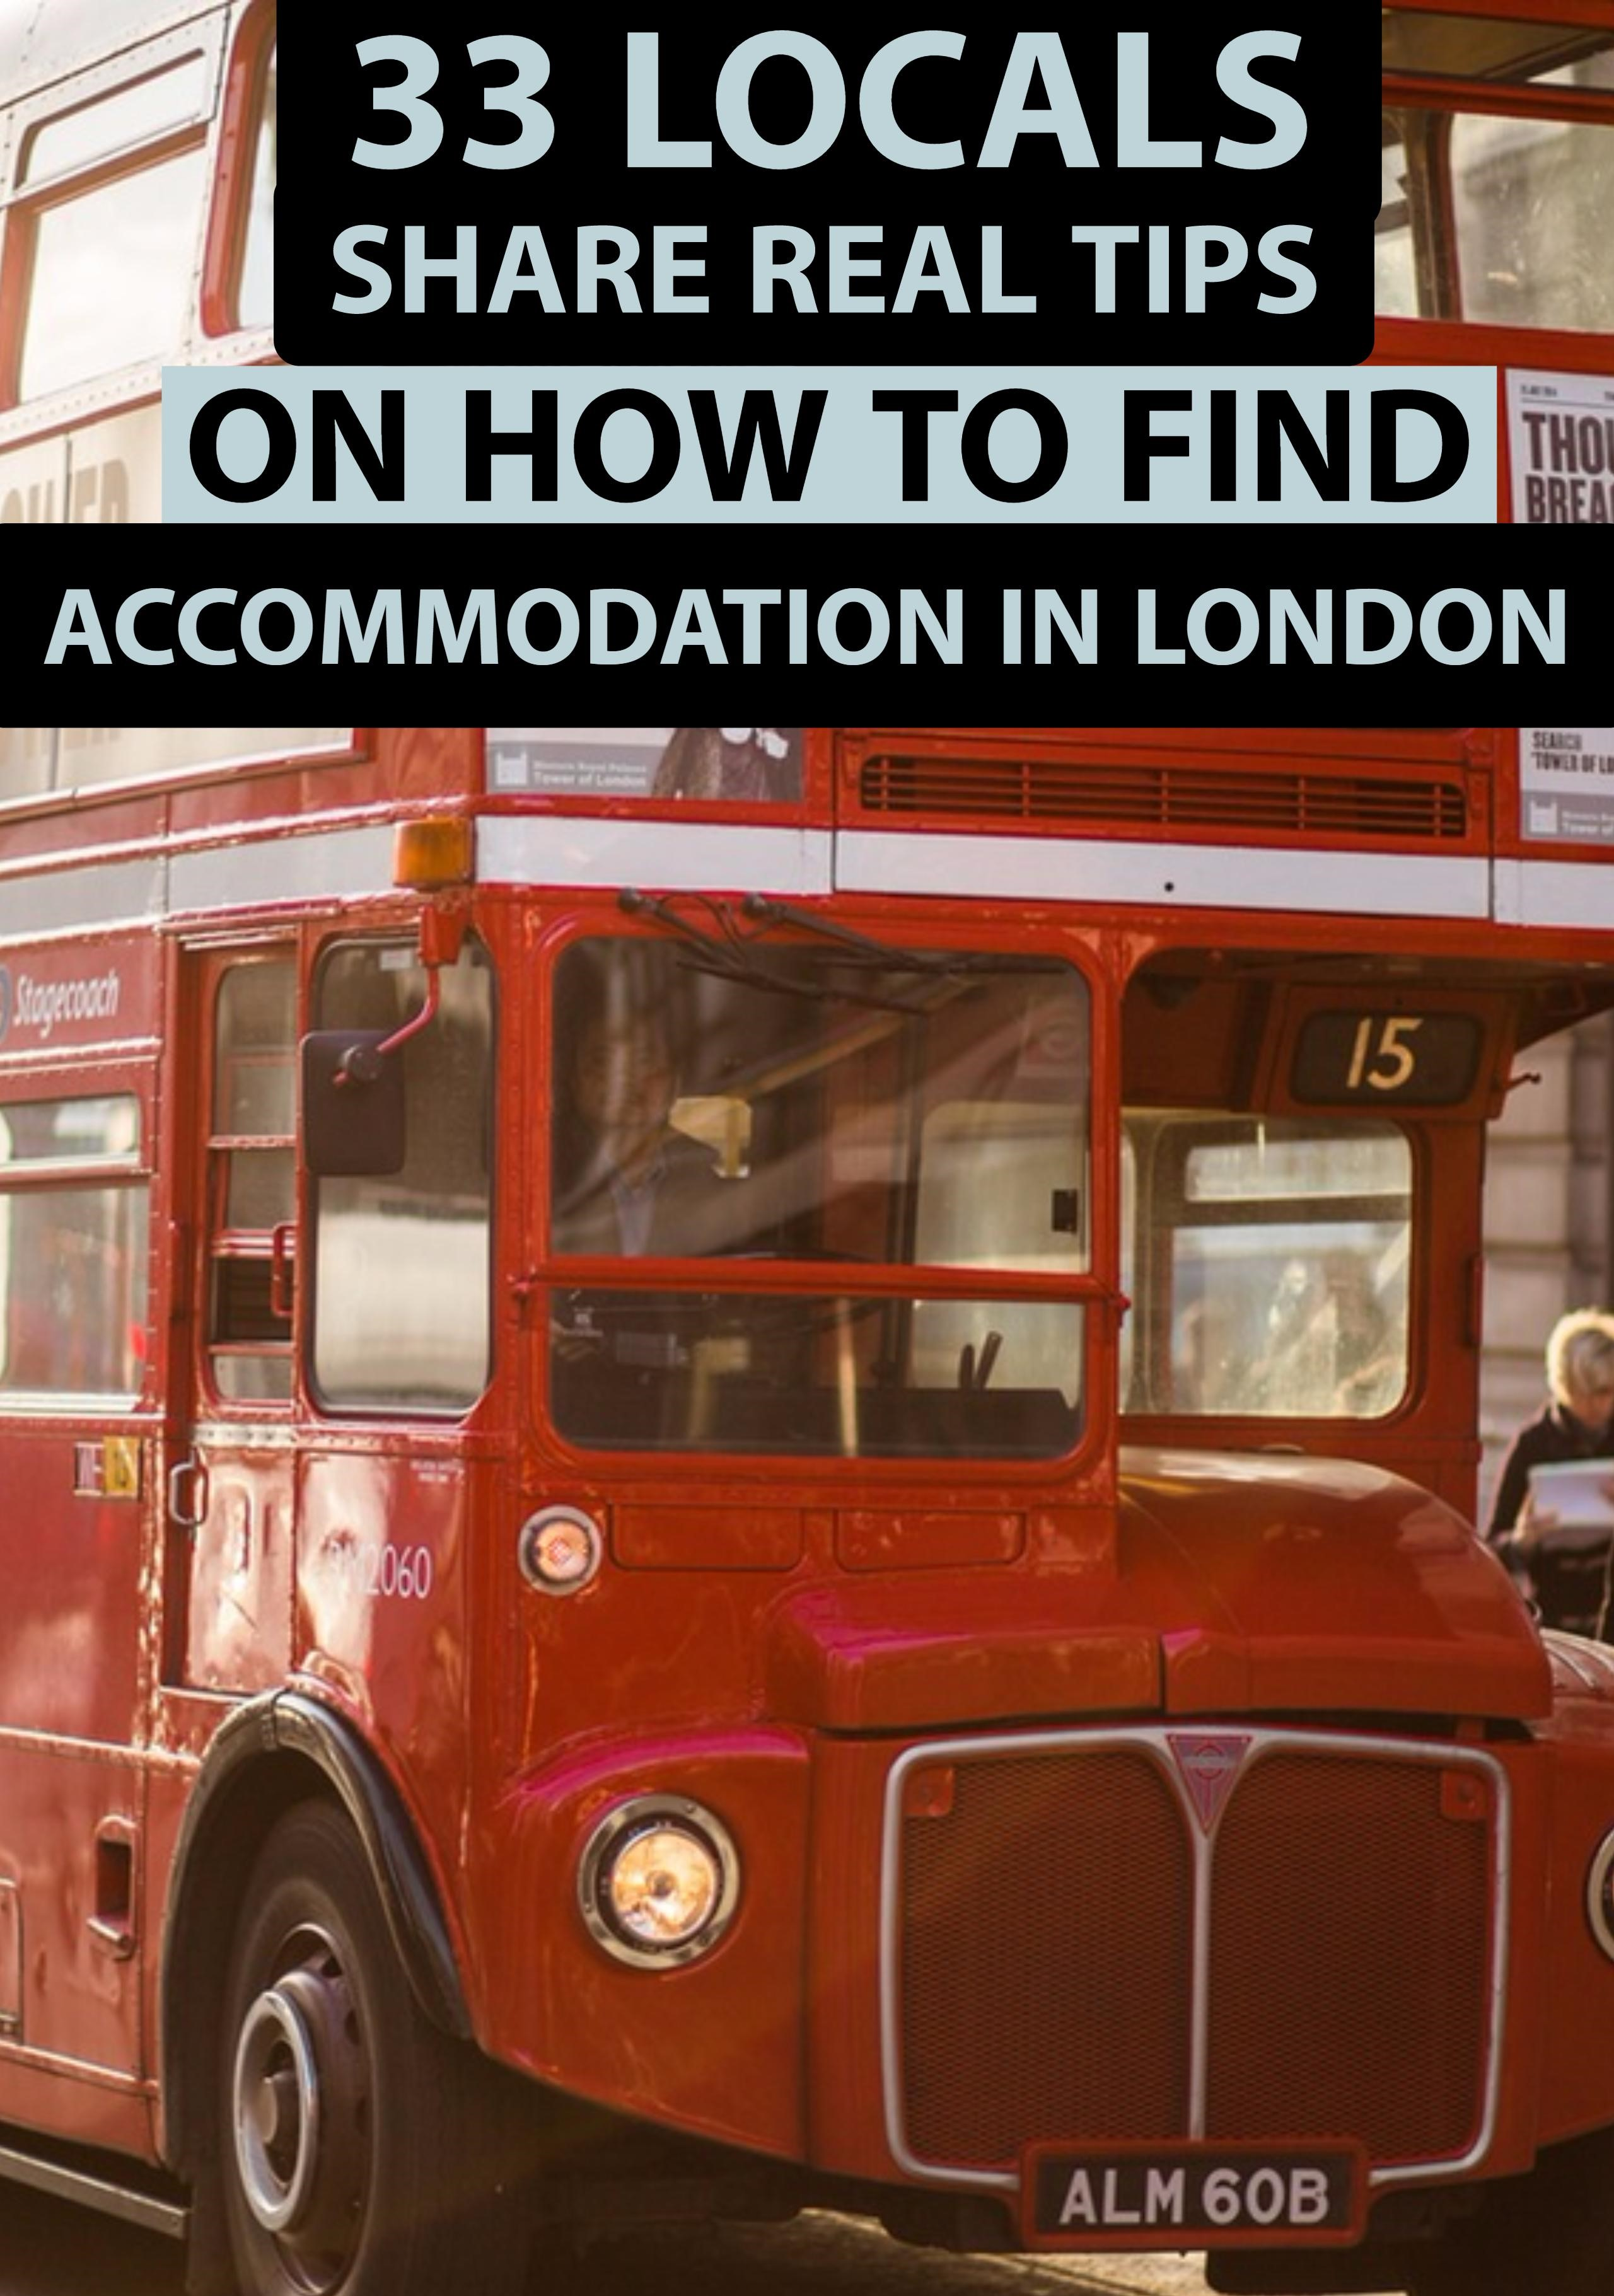 33 Locals Share REAL Tips on How to Find Accommodation in London